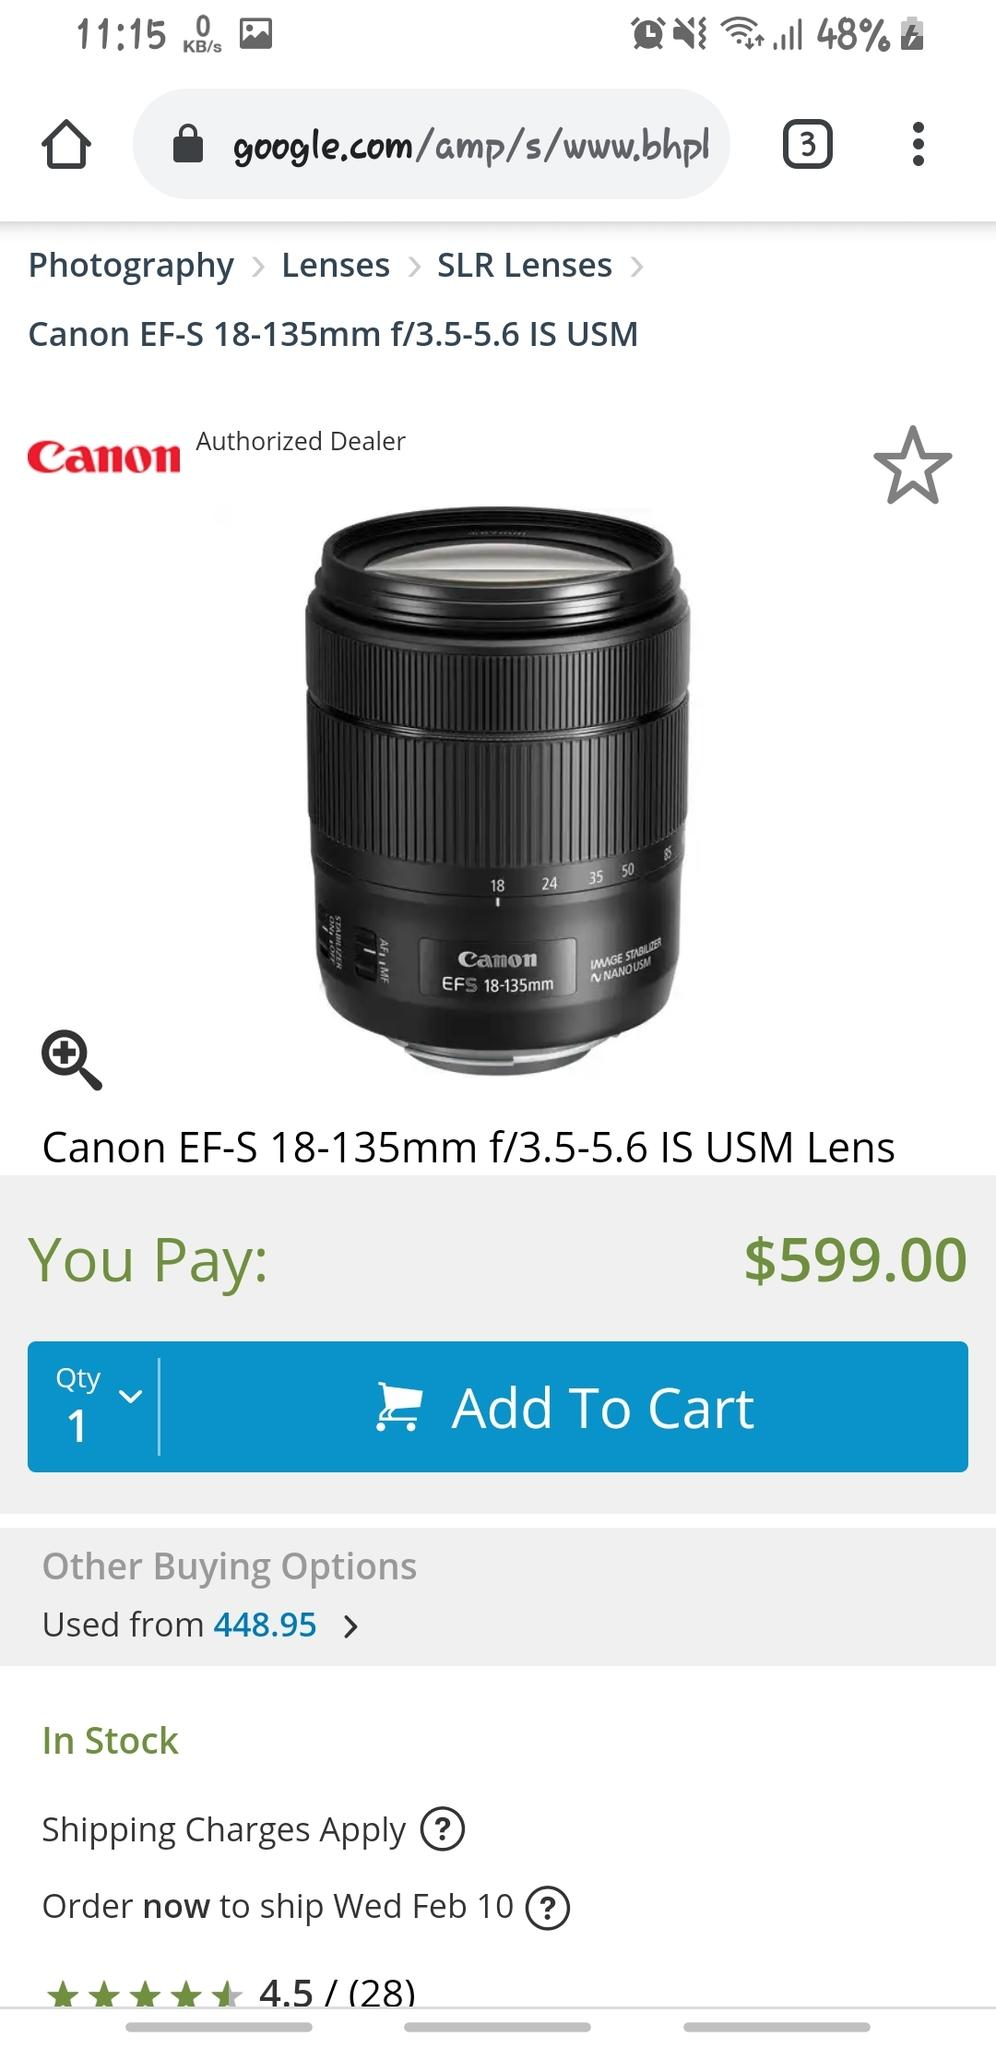 Canon EF-S 18-135mm New lens